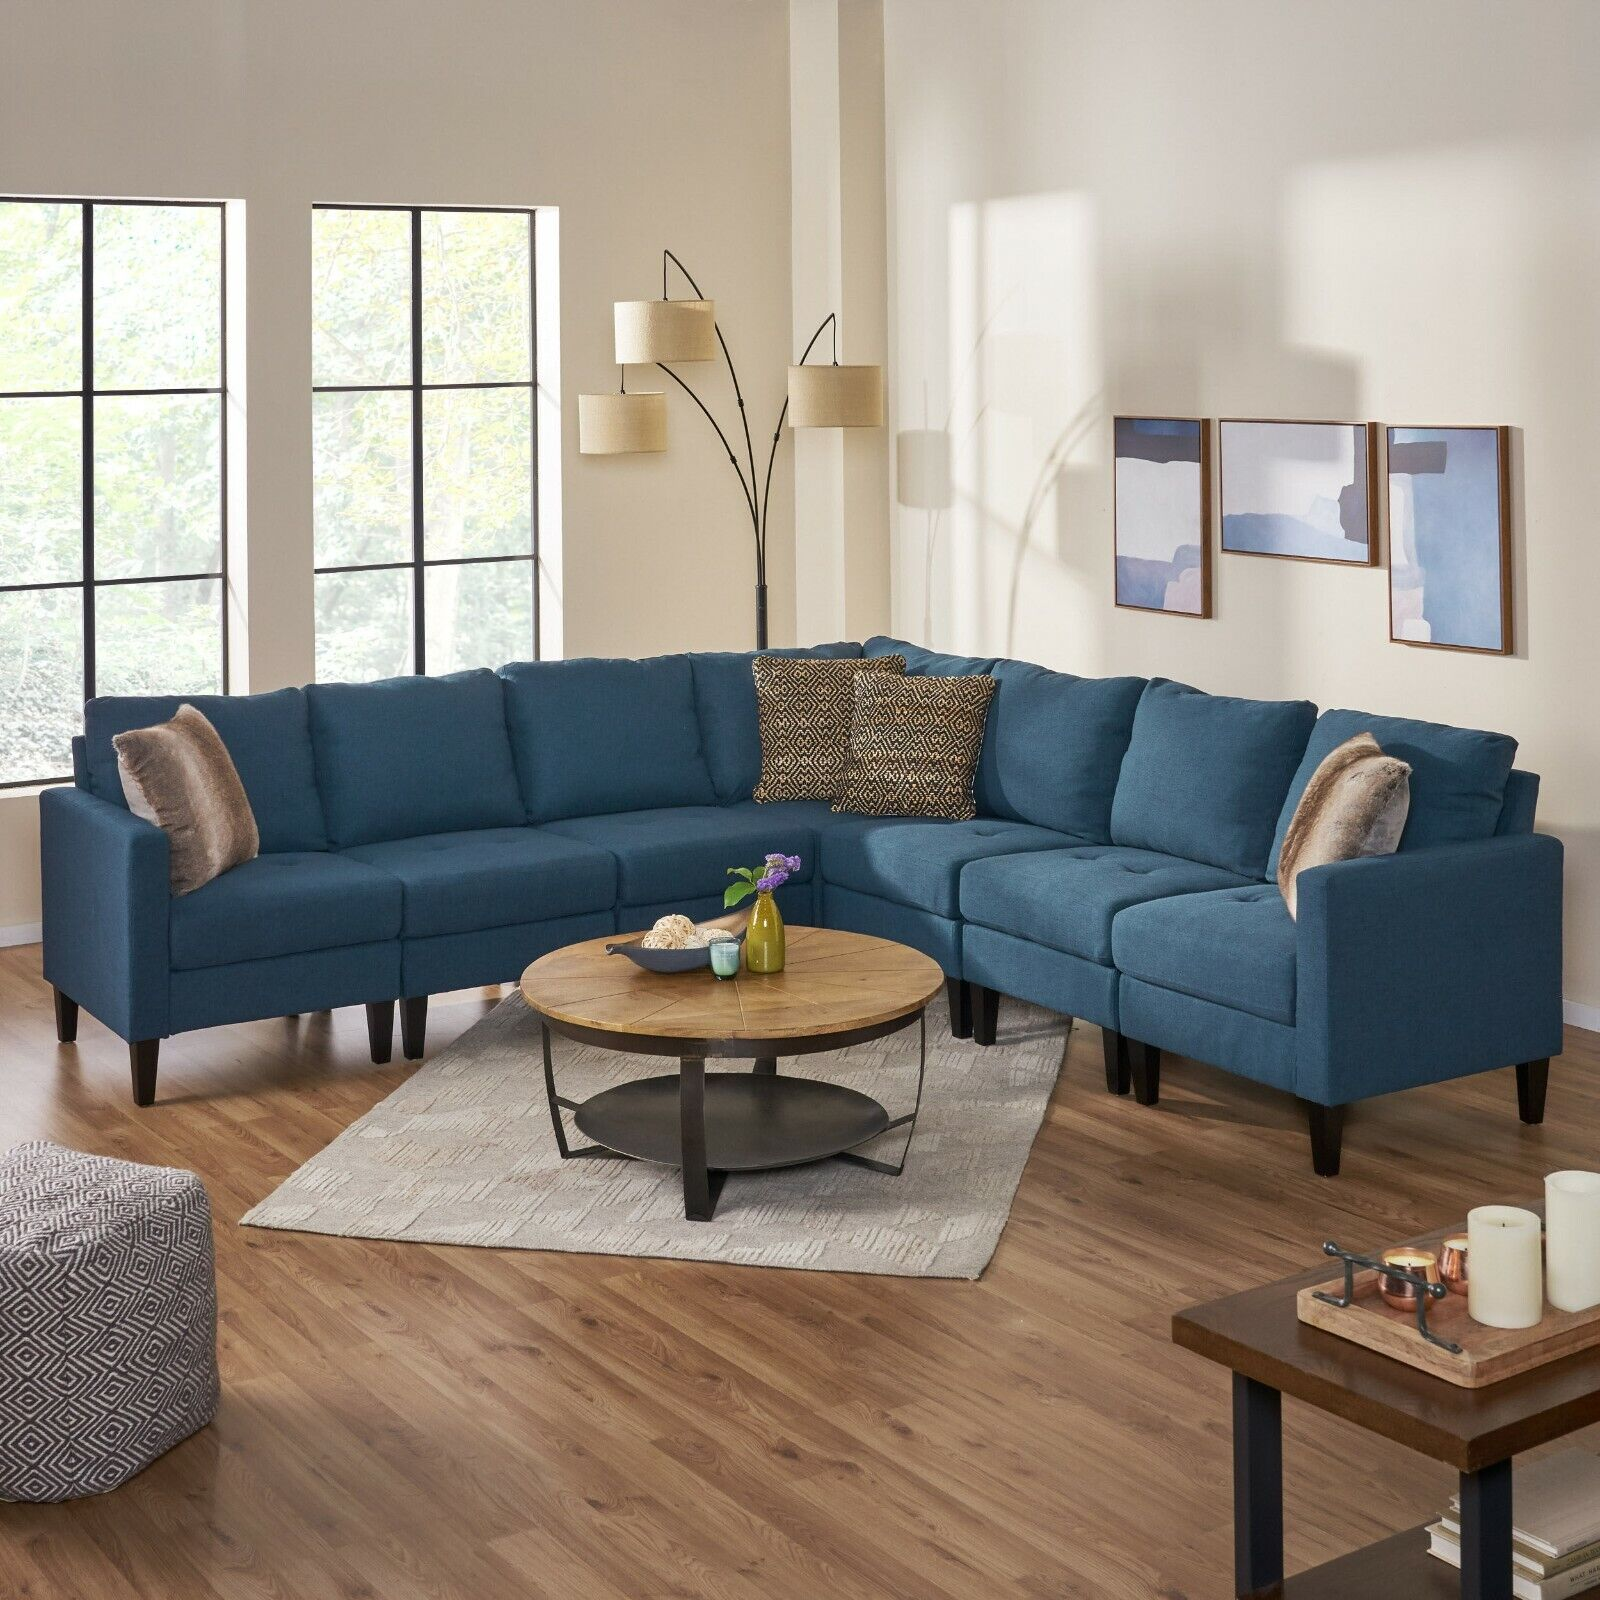 Carolina Contemporary 7 Piece Fabric Sectional Sofa with Button Tufted Seating Furniture